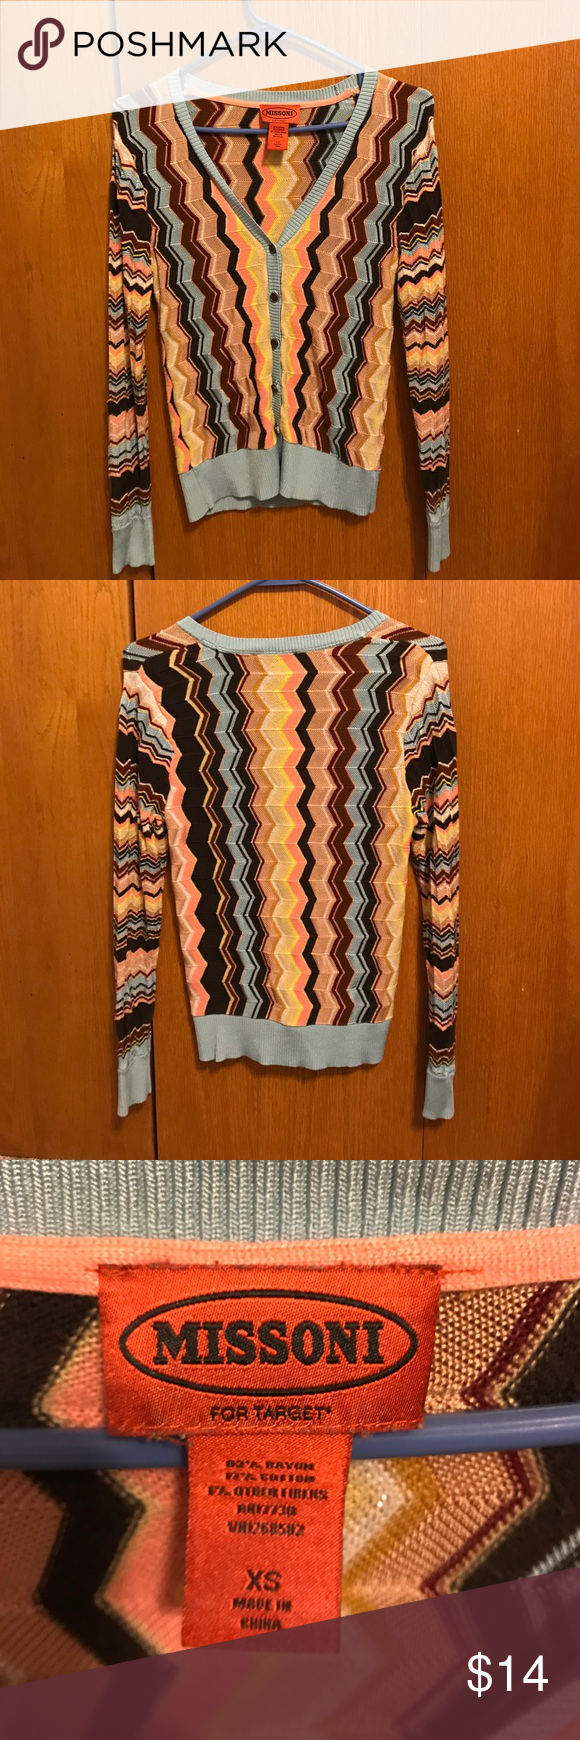 Missoni for Target cardigan | Missoni, Target and Color patterns